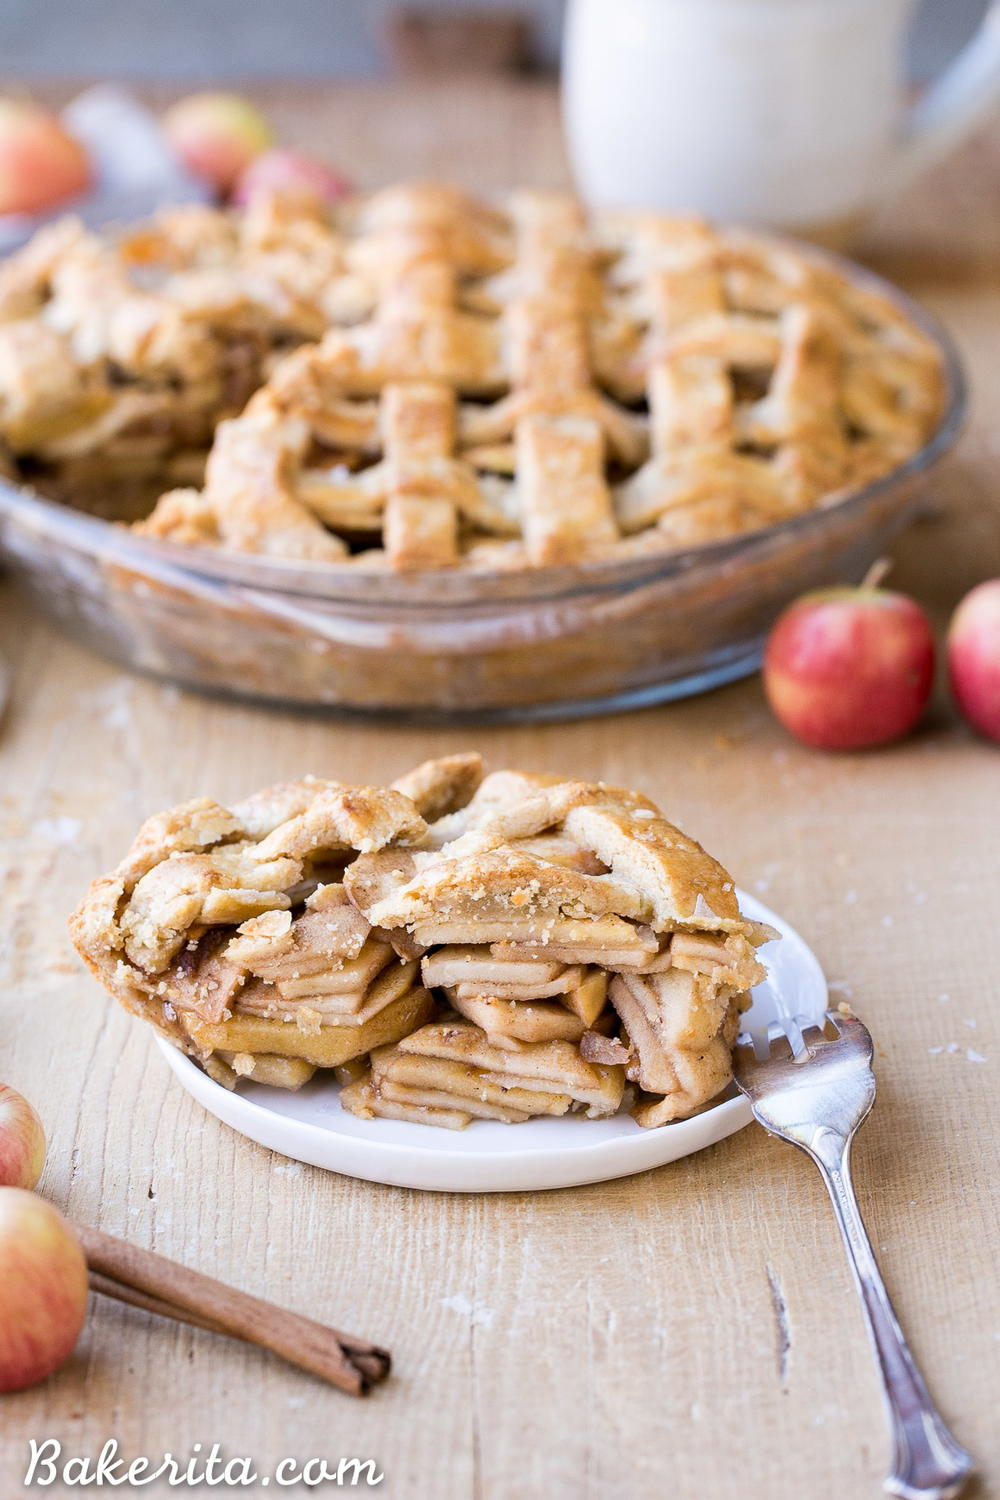 Paleo Apple Pie | RecipeLion.com